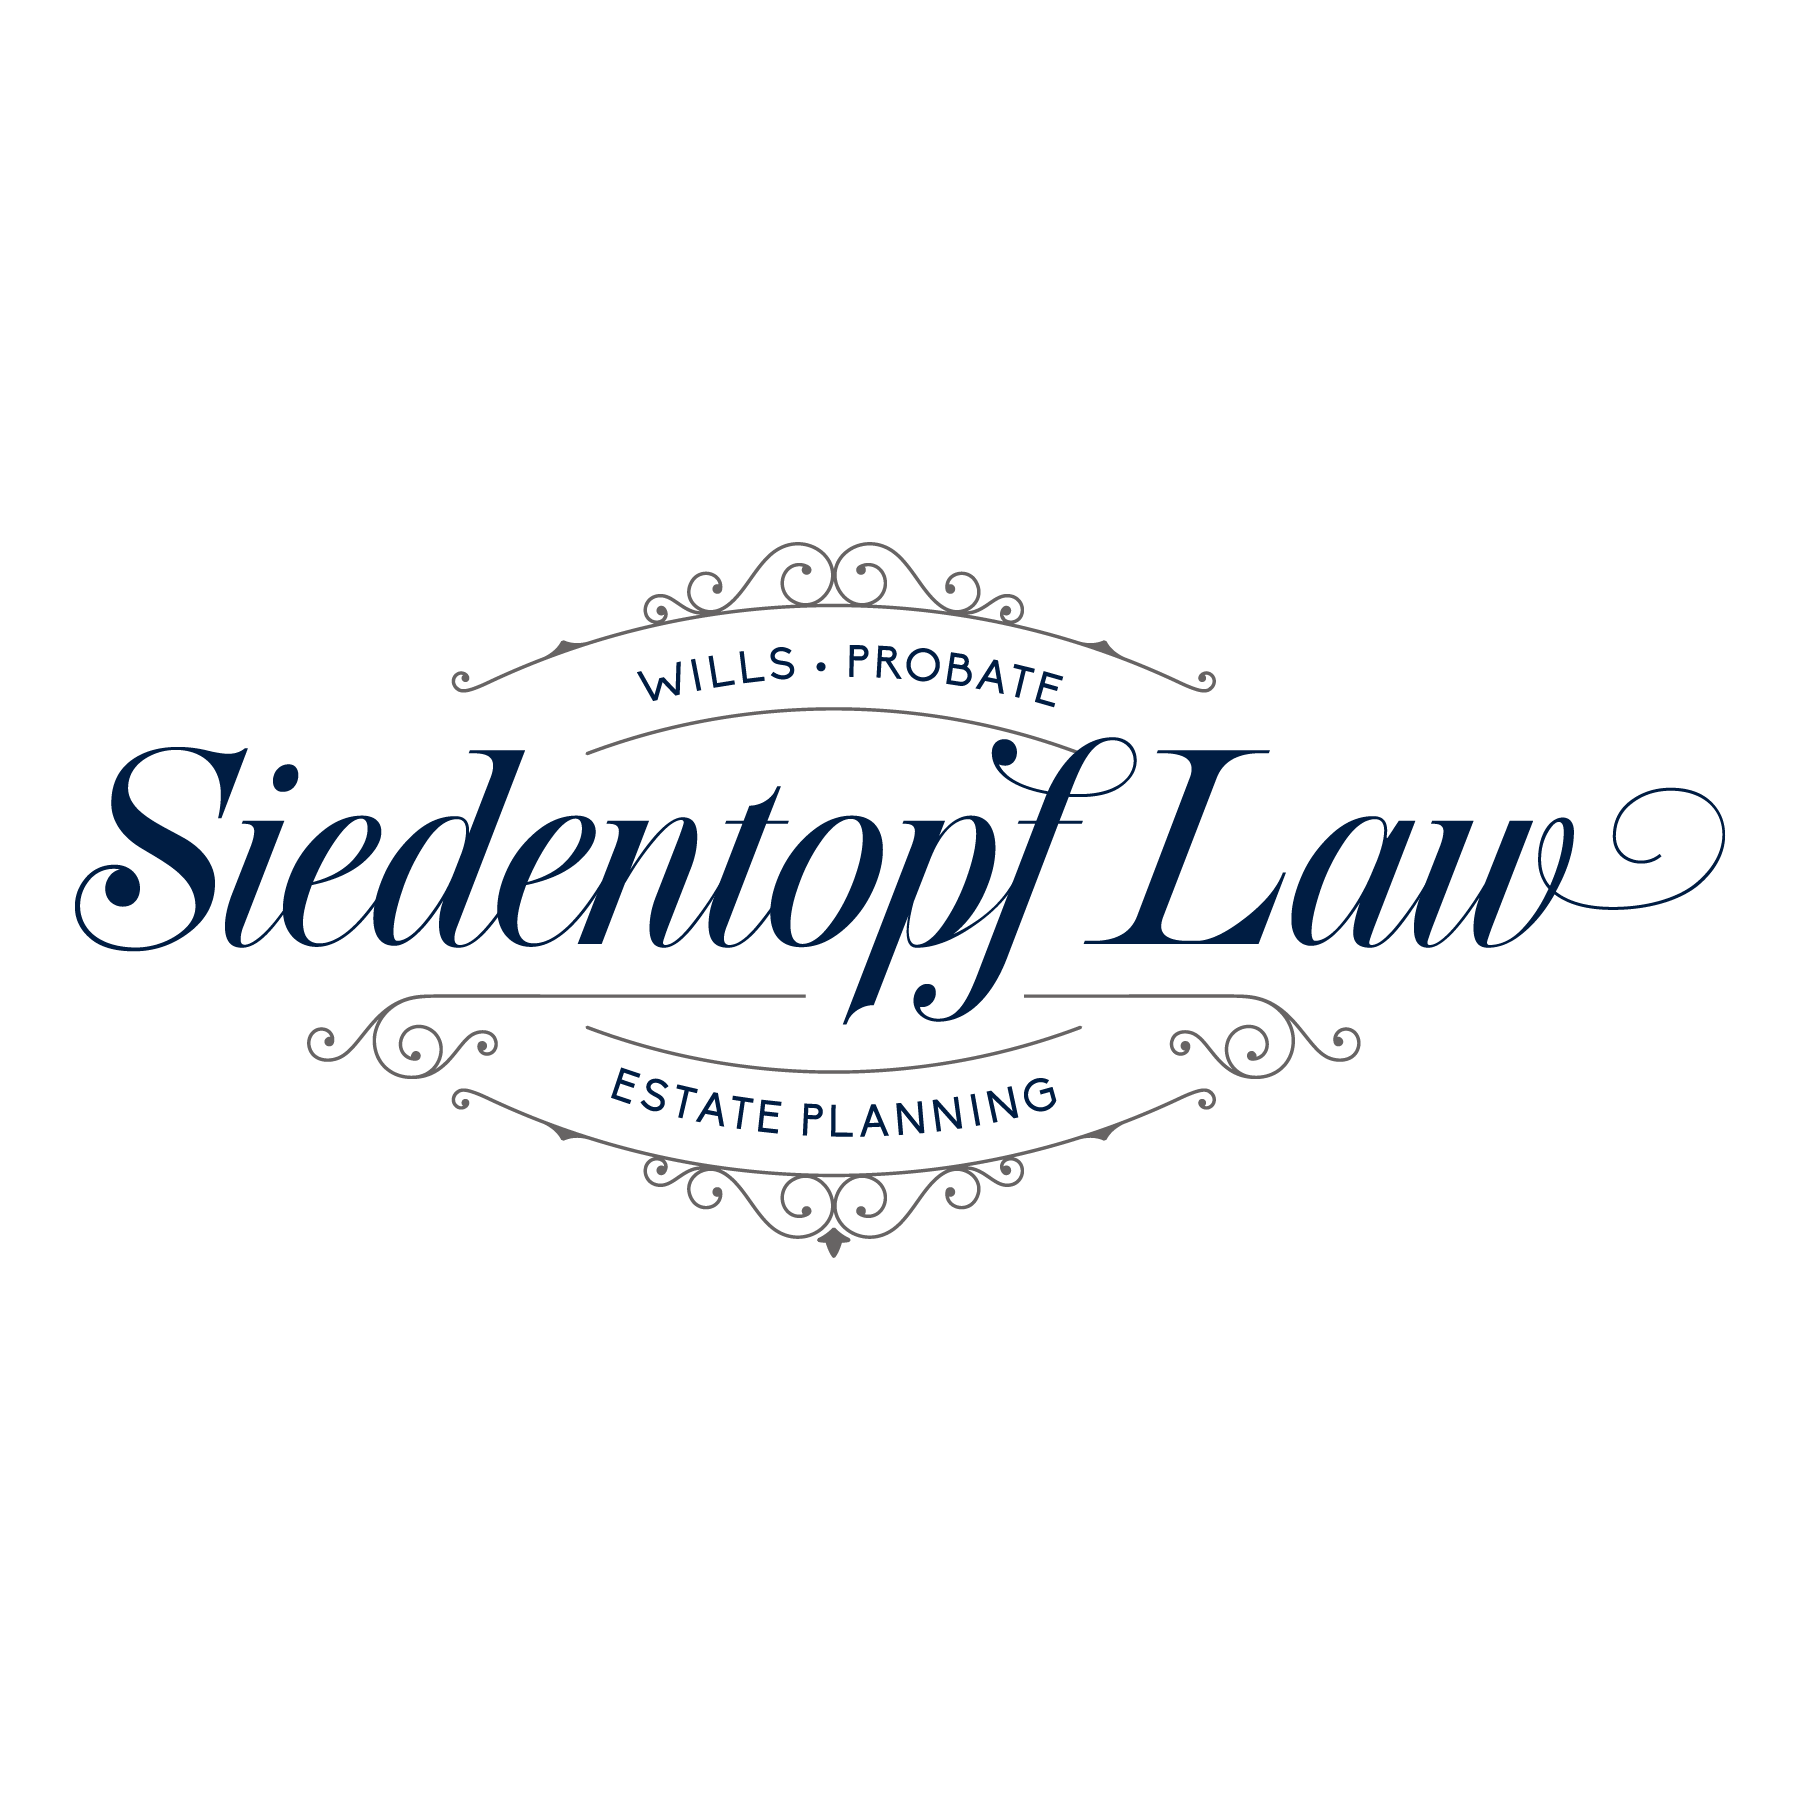 Siedentopf Law